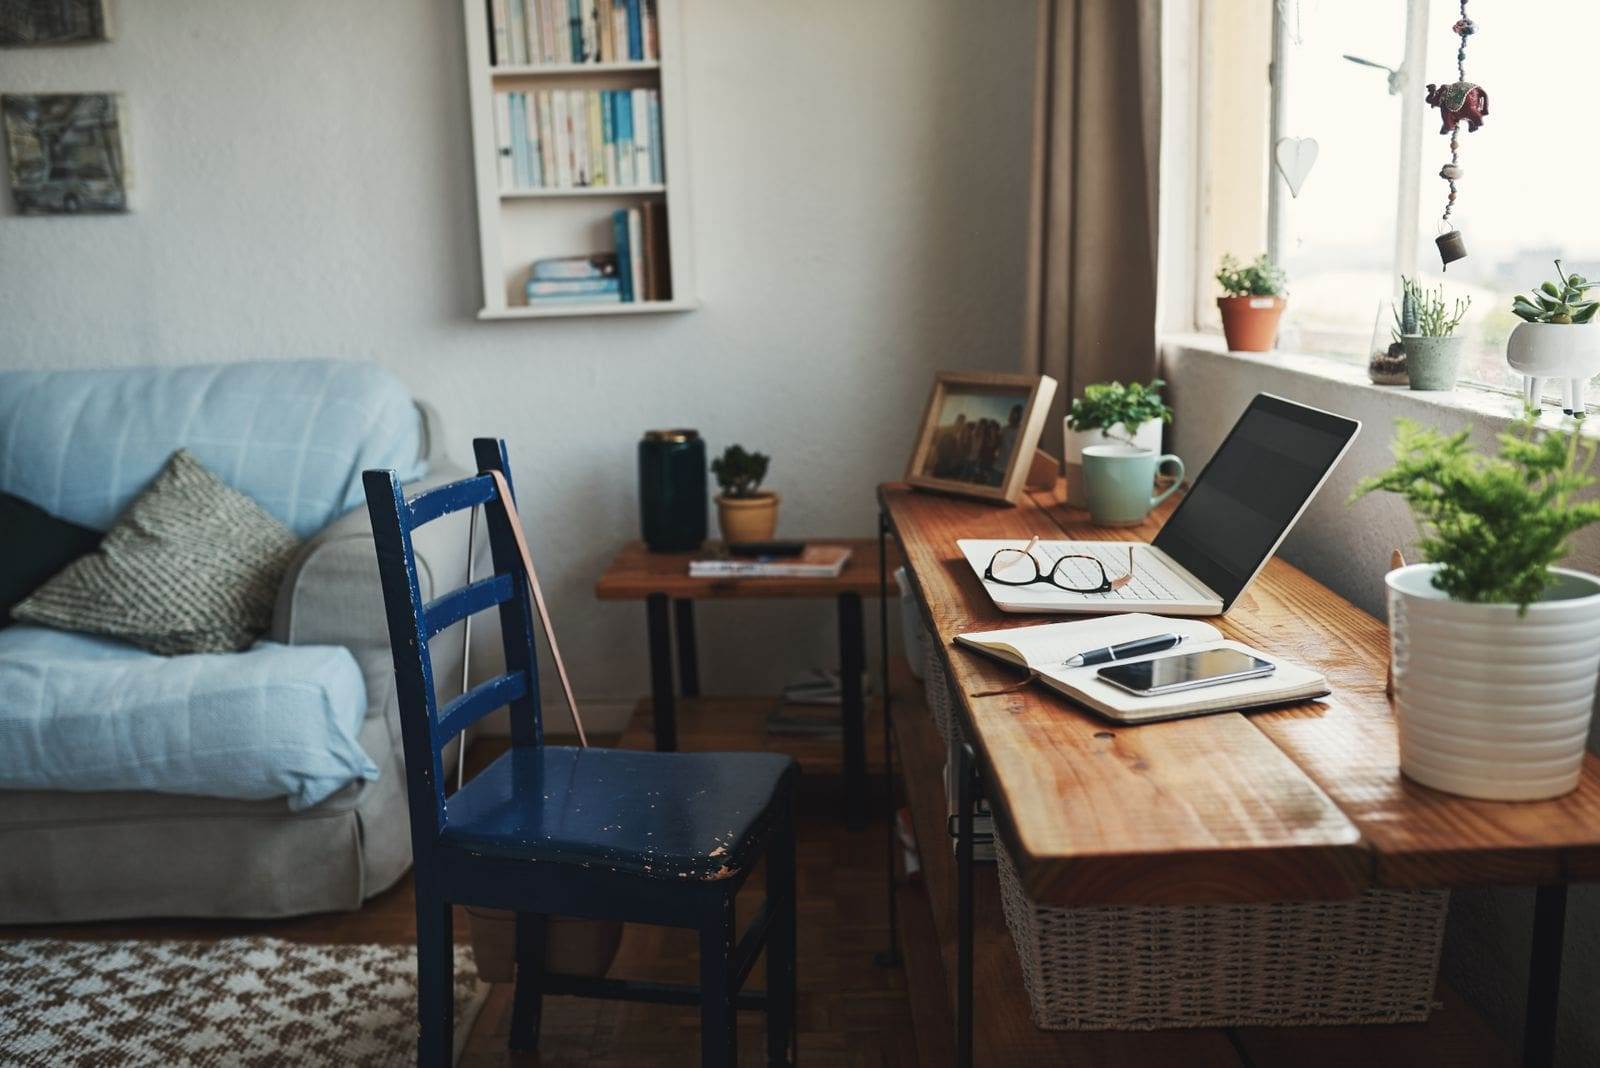 Home office desk in front of window